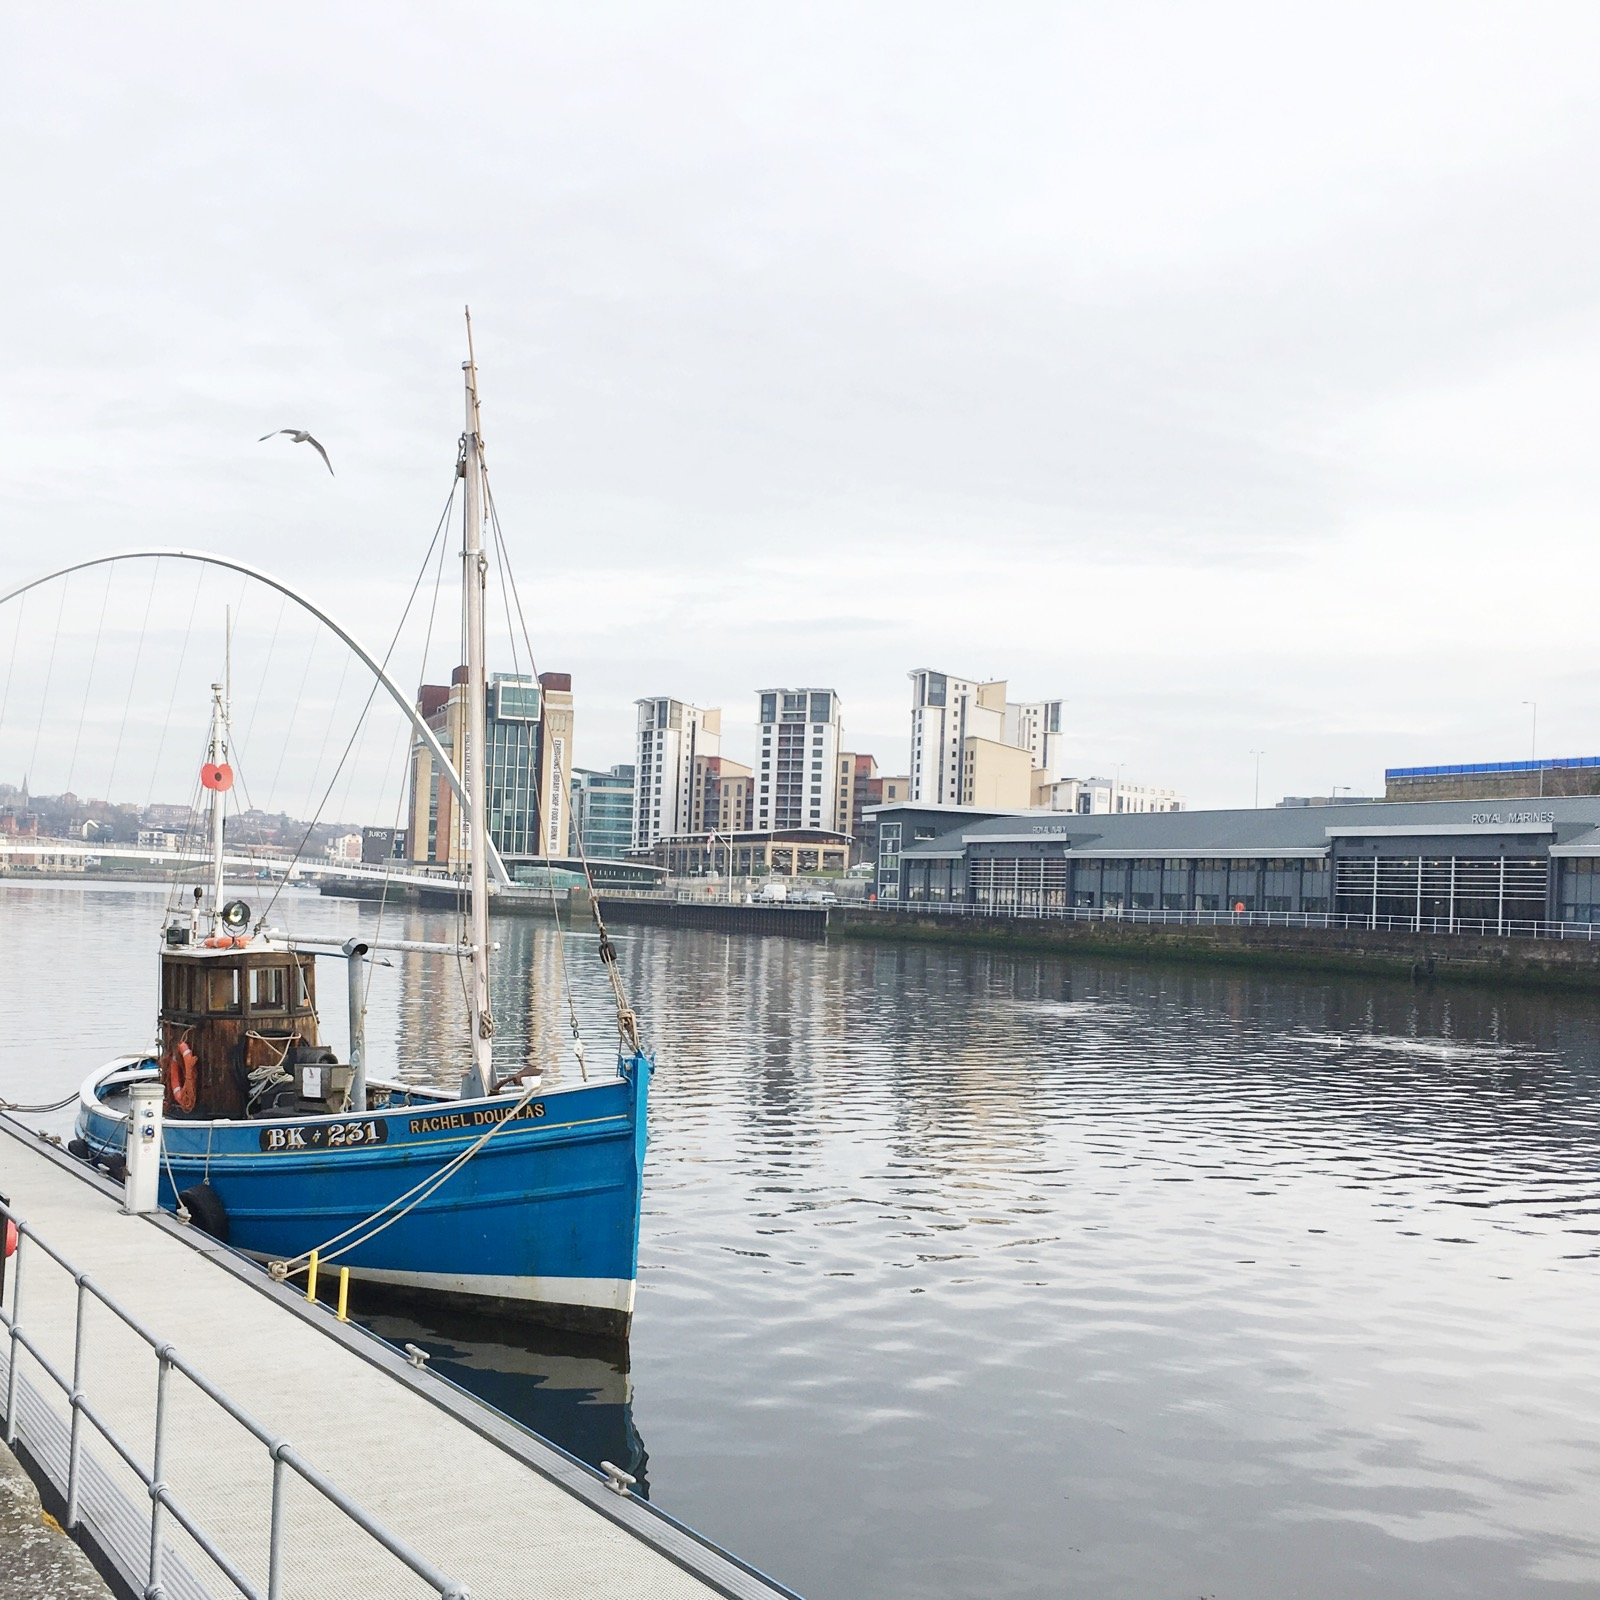 8 Things I've Learned Living in Newcastle - River Tyne